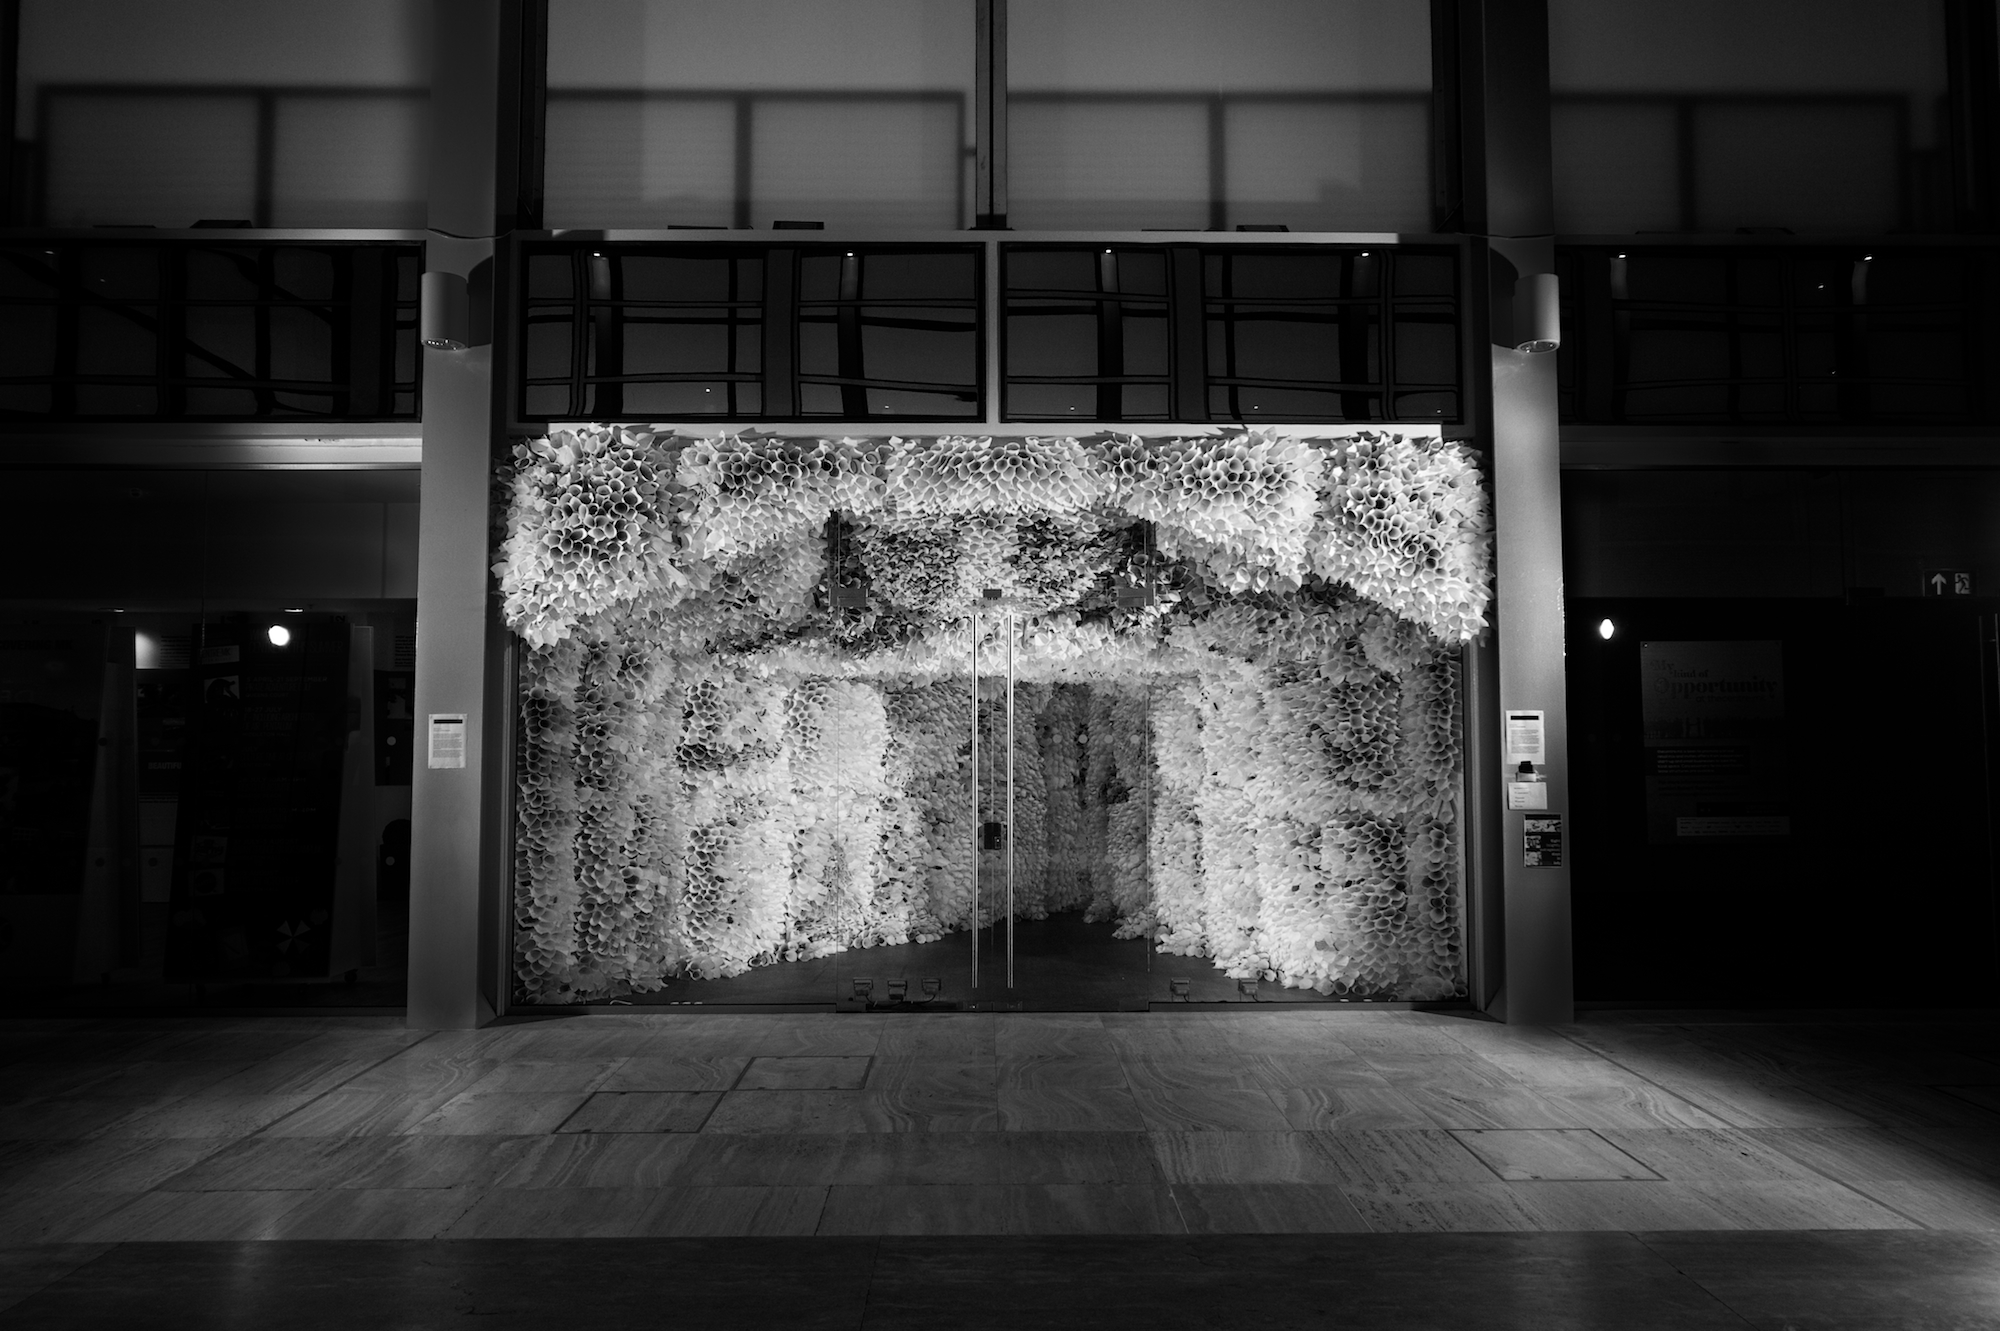 A glass door entering a corridor of thousand of white paper sculptures. leading to a grand entrance.